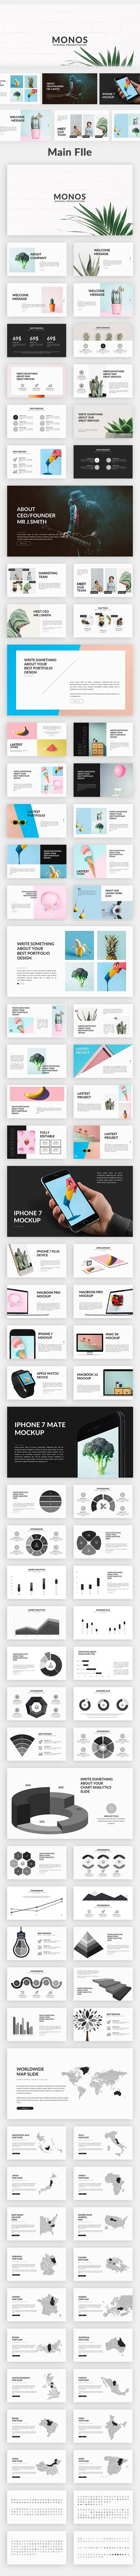 Monos - Minimal Powerpoint Template - #PowerPoint #Templates Presentation Templates Download here: https://graphicriver.net/item/monos-minimal-powerpoint-template/19488448?ref=alena994